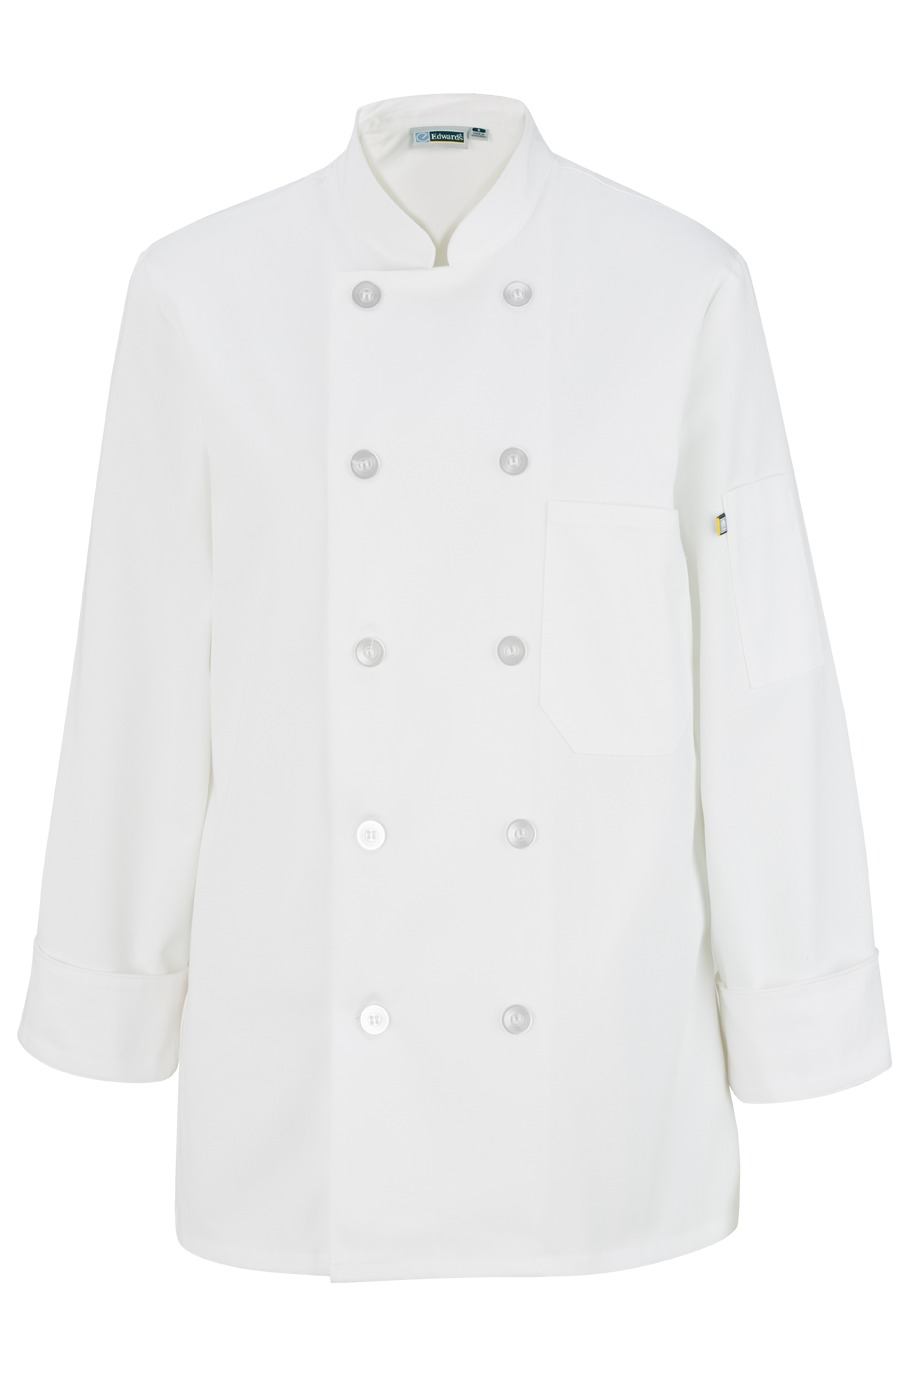 Edwards Garment 6301 - Women's Casual 10 Button Chef Coat